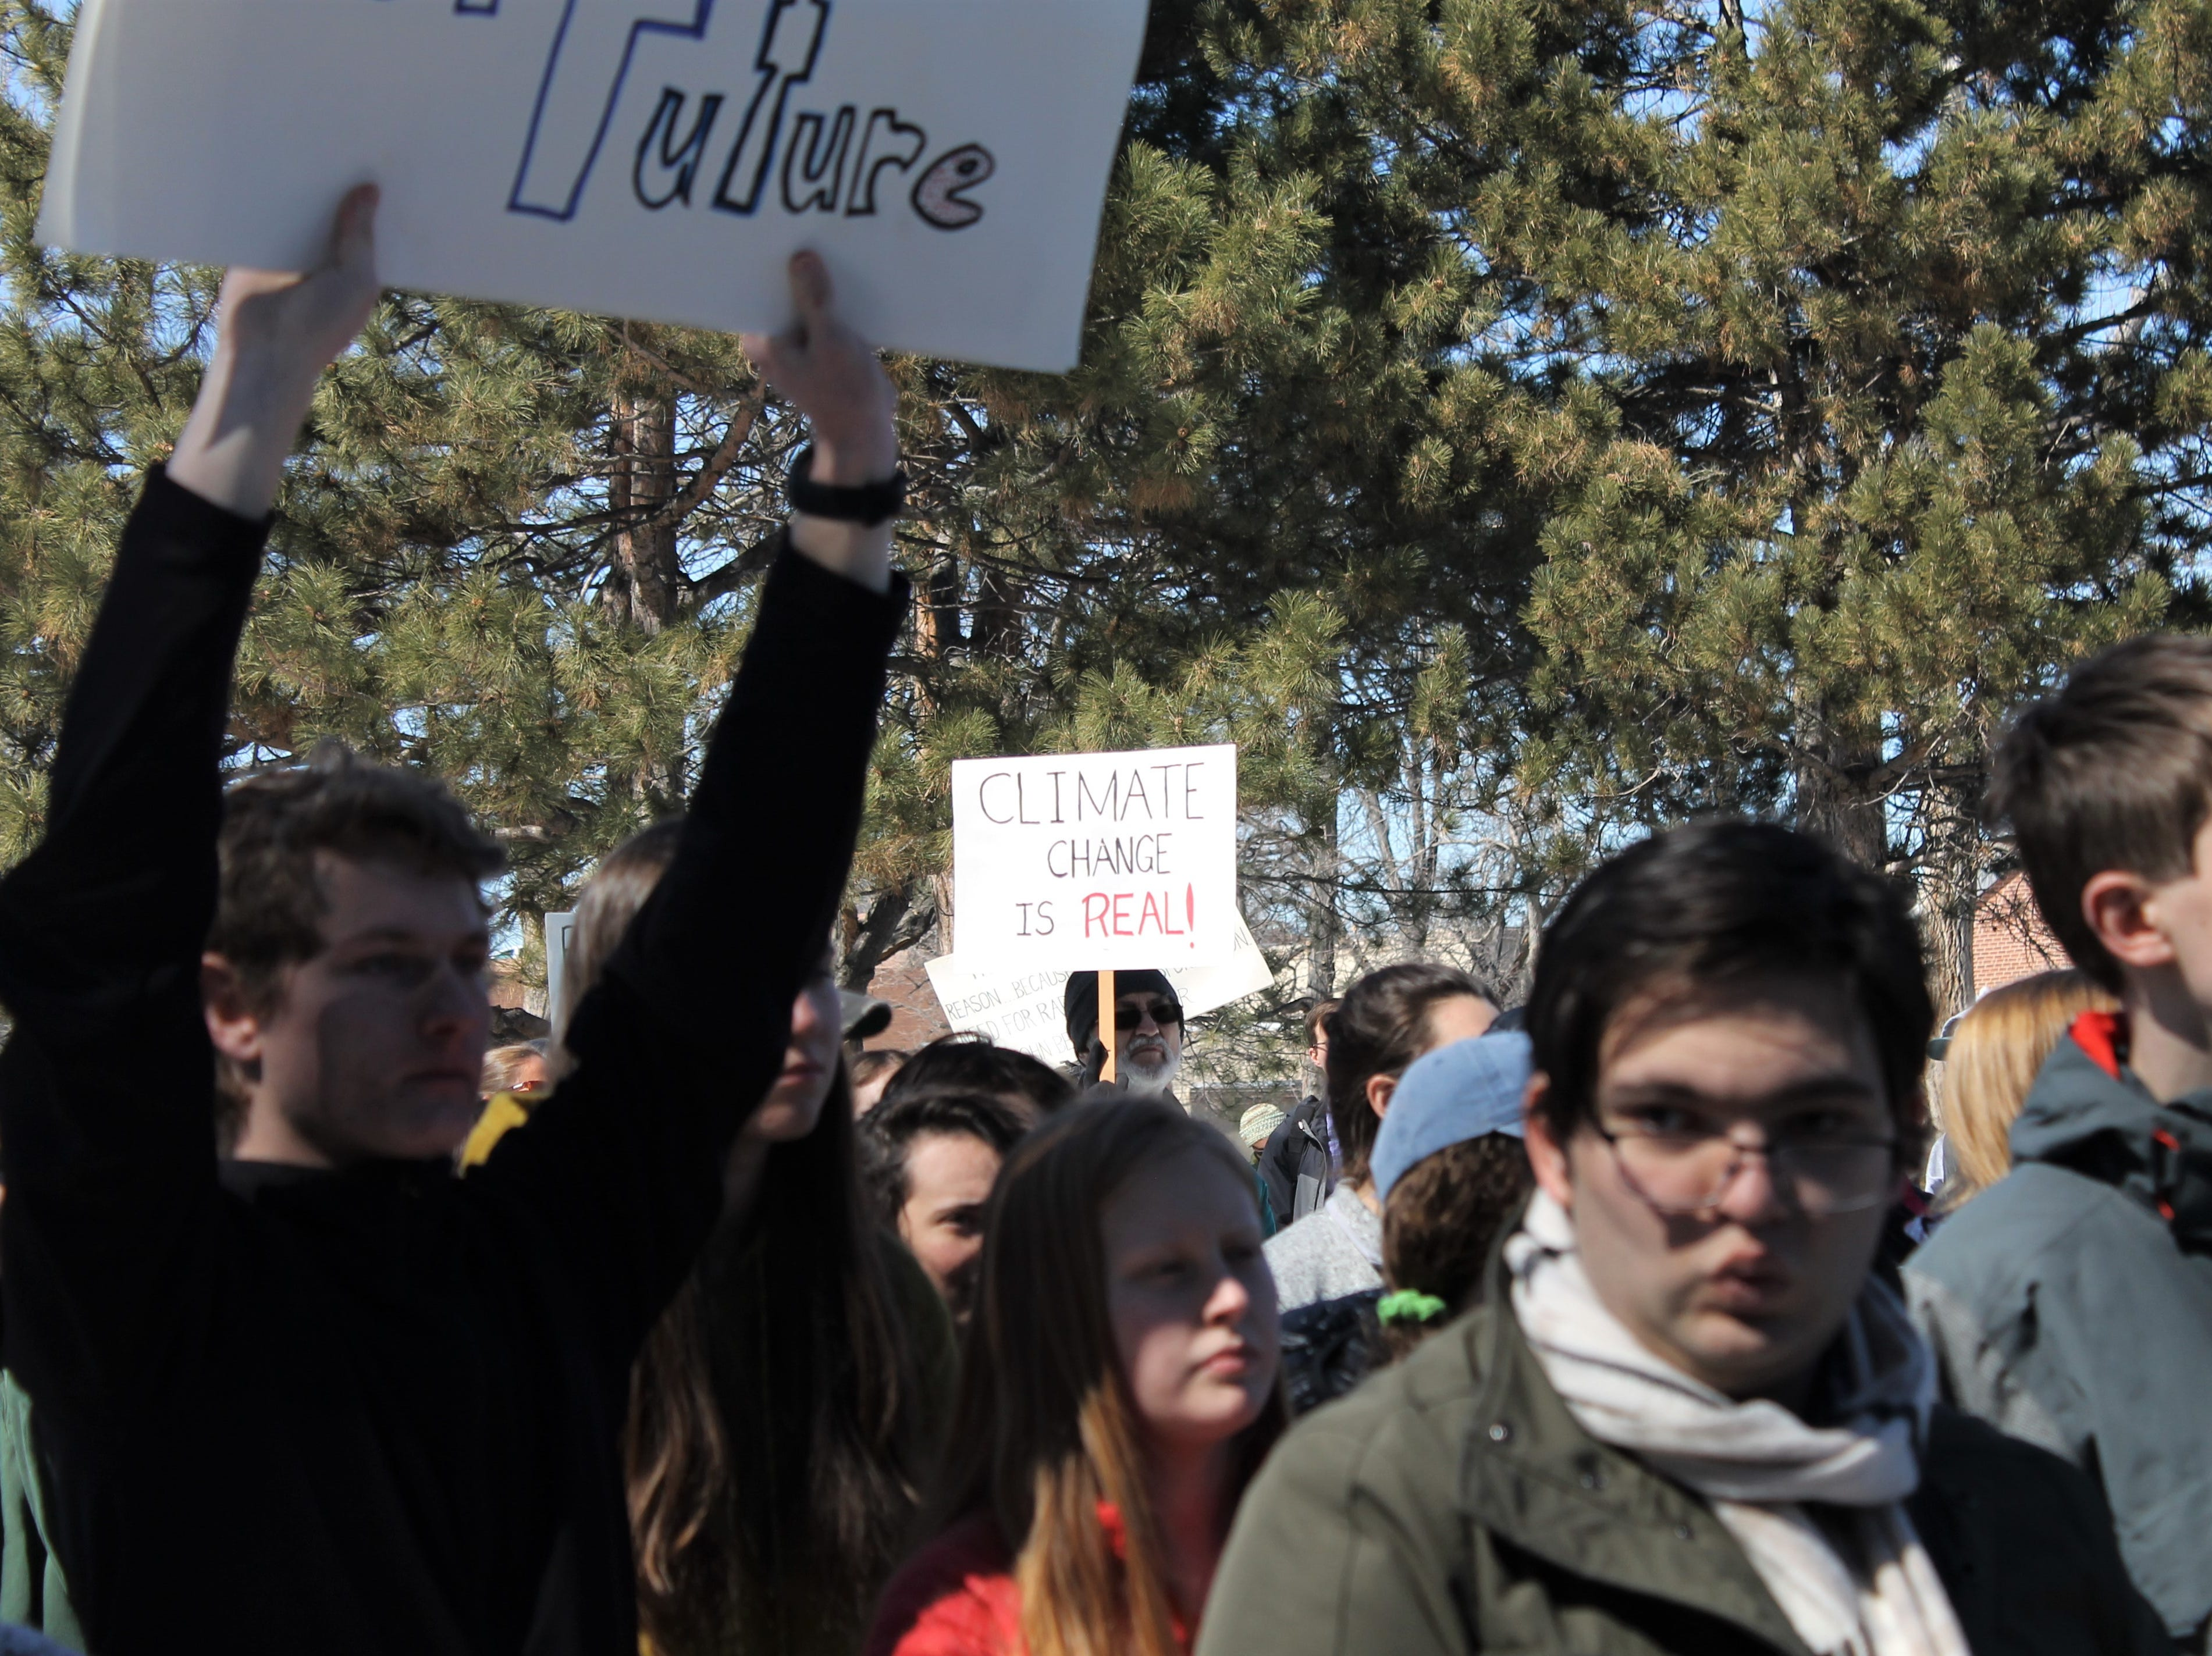 Hundreds of students from Thompson School District and Poudre School District ditched class to call for better climate policy March 15, 2019. Some adults joined in to show their support as well.